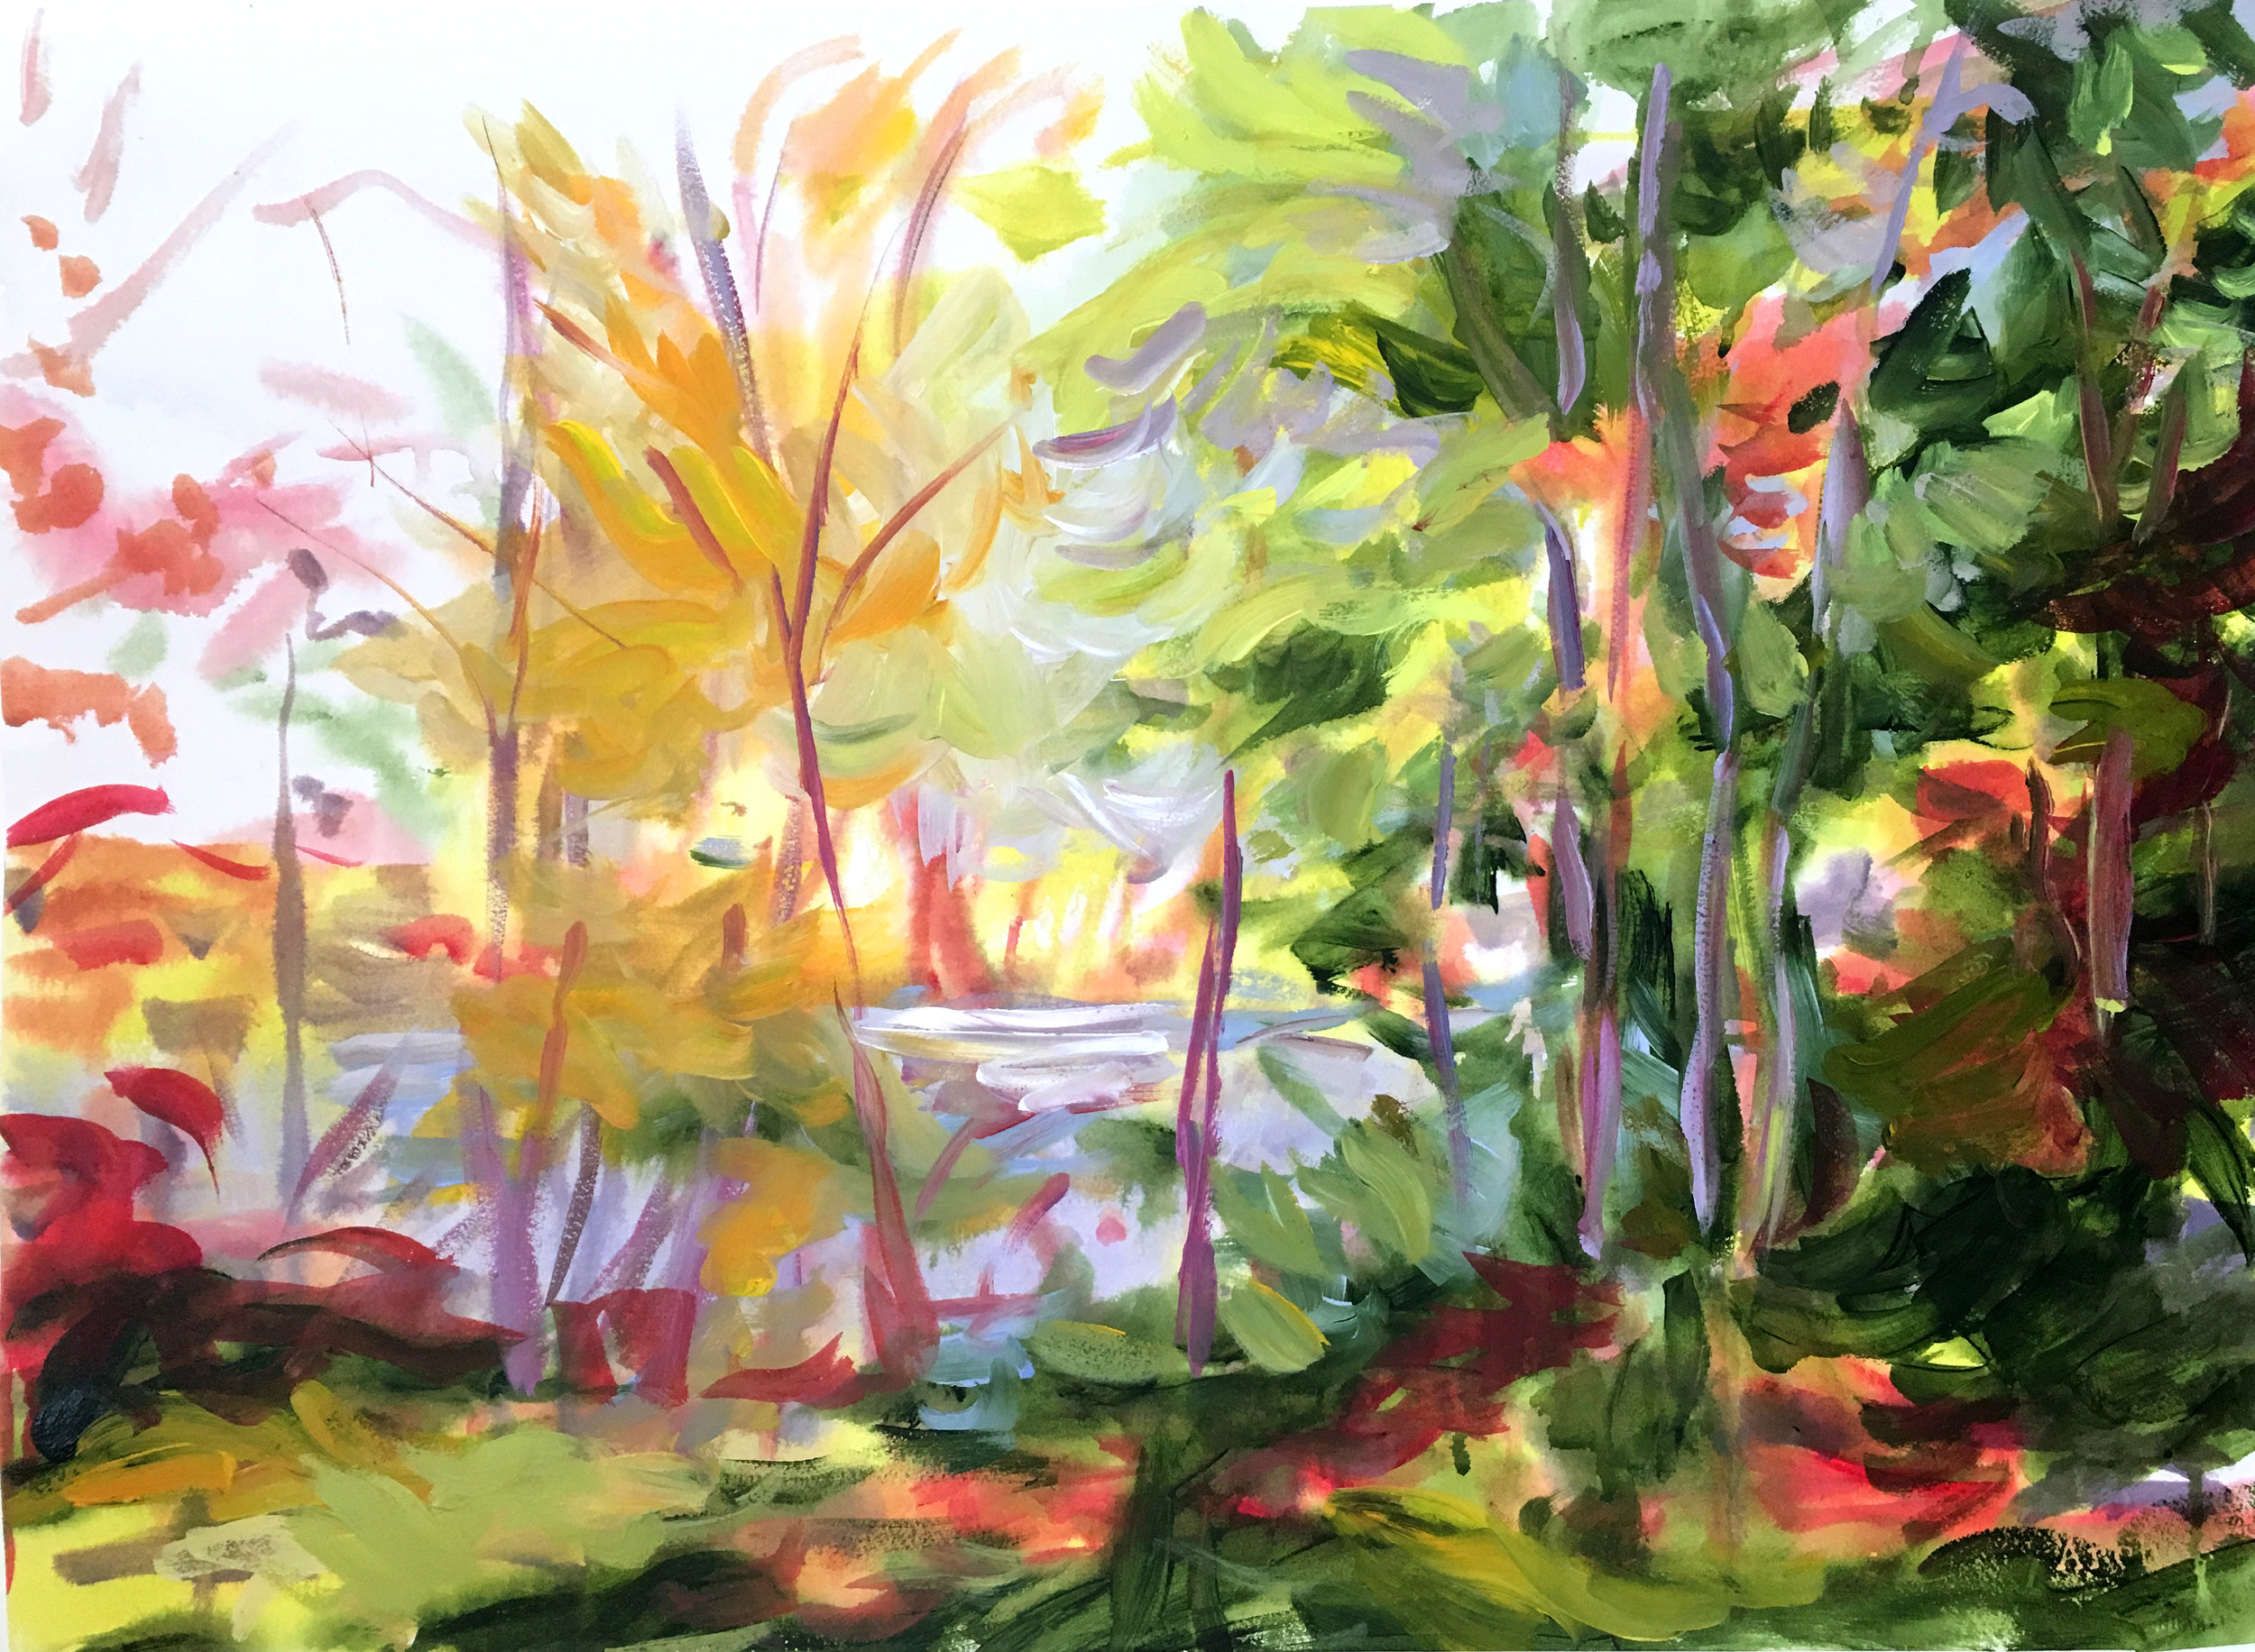 Eastern Townships #1 30x36 on paper